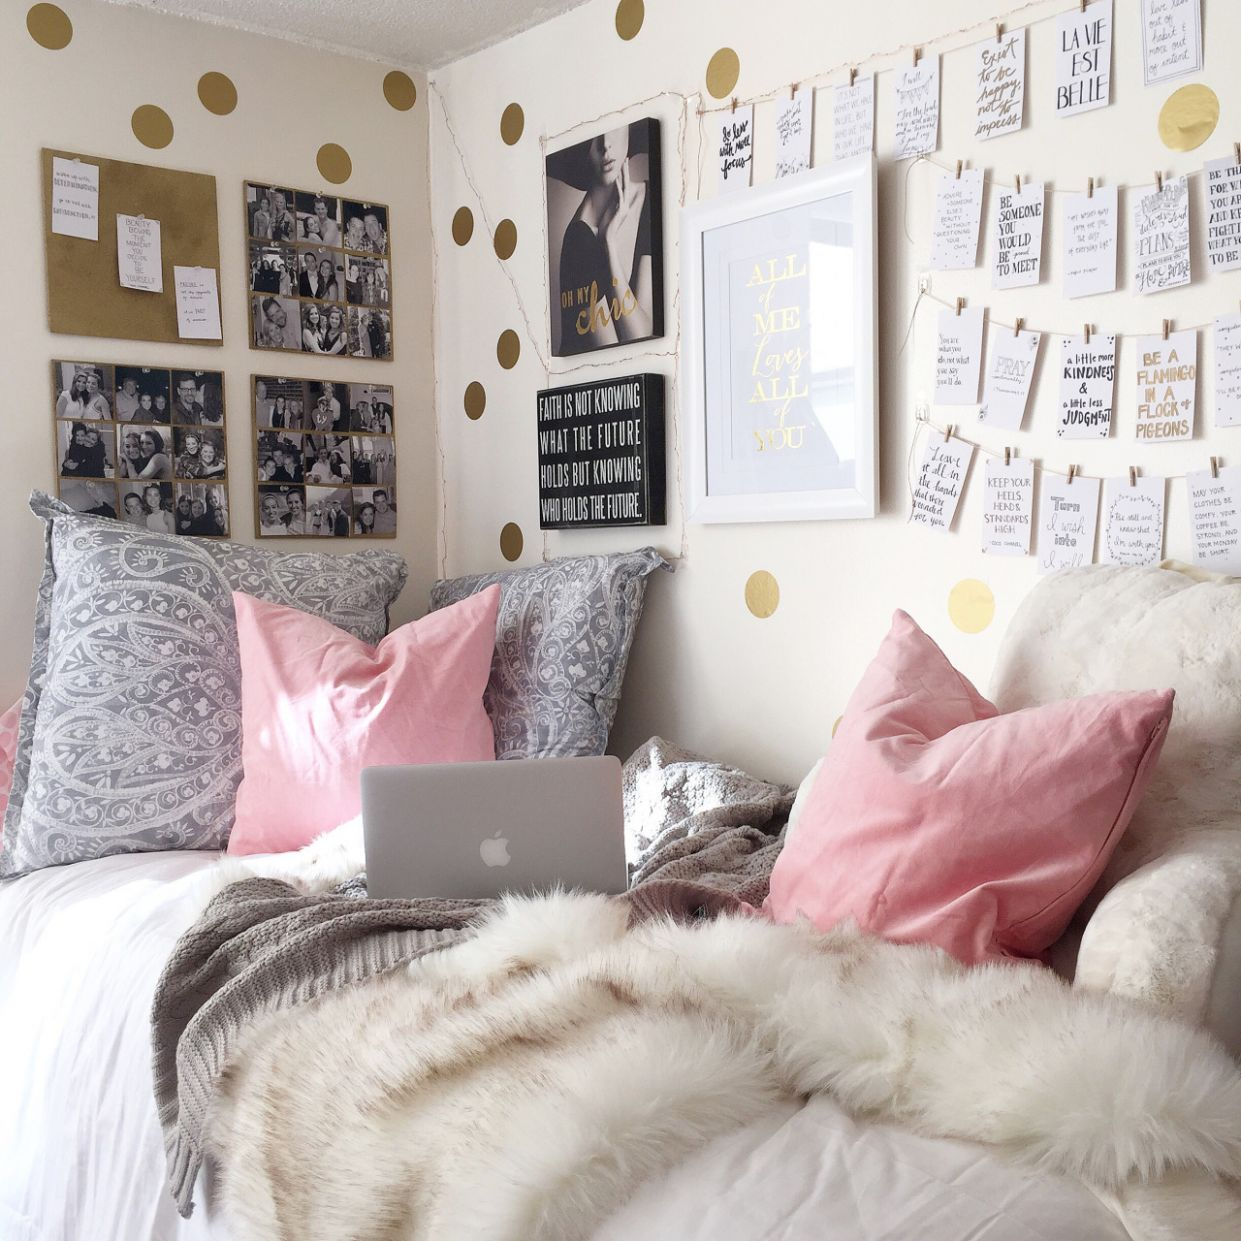 Inspiration from 9 Super-Stylish Real Dorm Rooms | Apartment Therapy